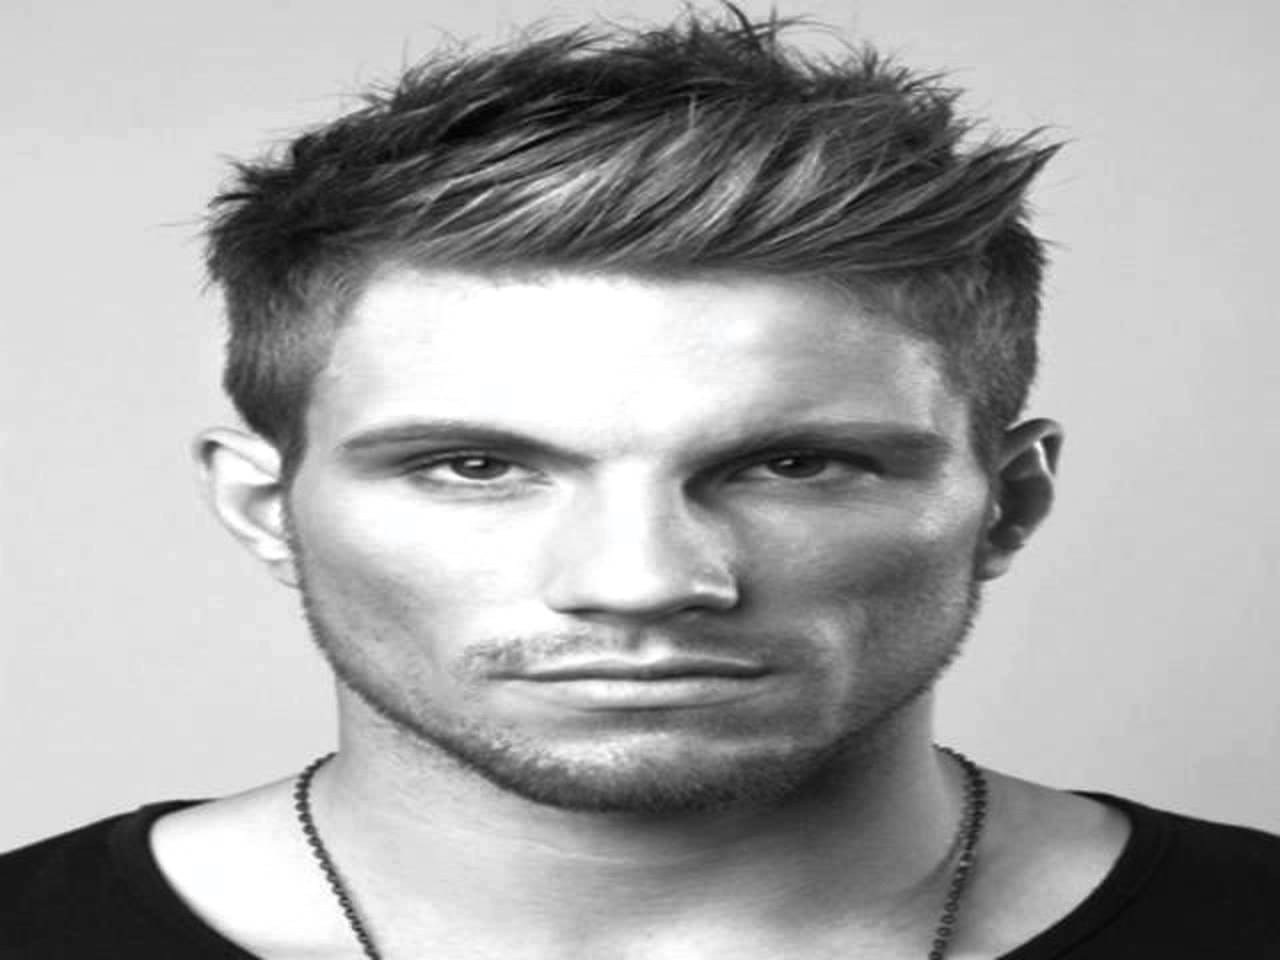 The Best Best Hairstyle For Me Male Fade Haircut Pictures